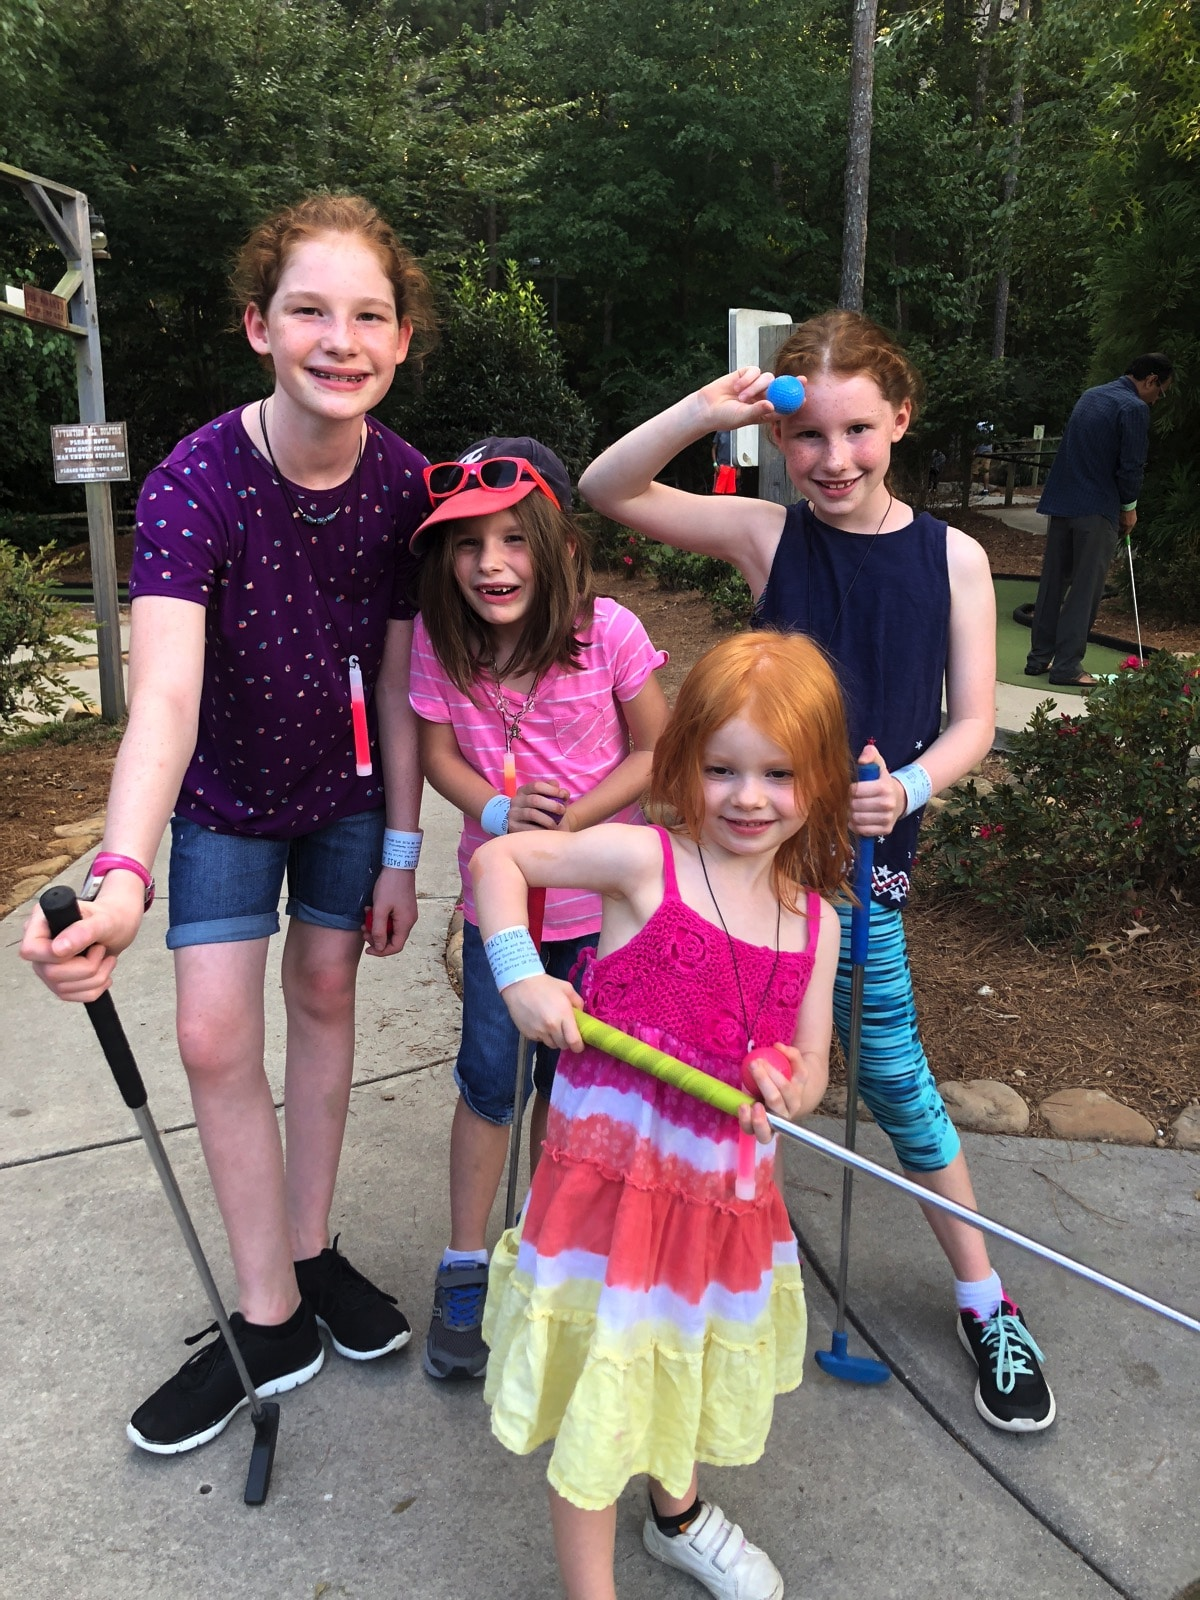 Pumpkin Festival at Stone Mountain Park: Play By Day, Glow by Night | Mommy and Me Monday miniature golf